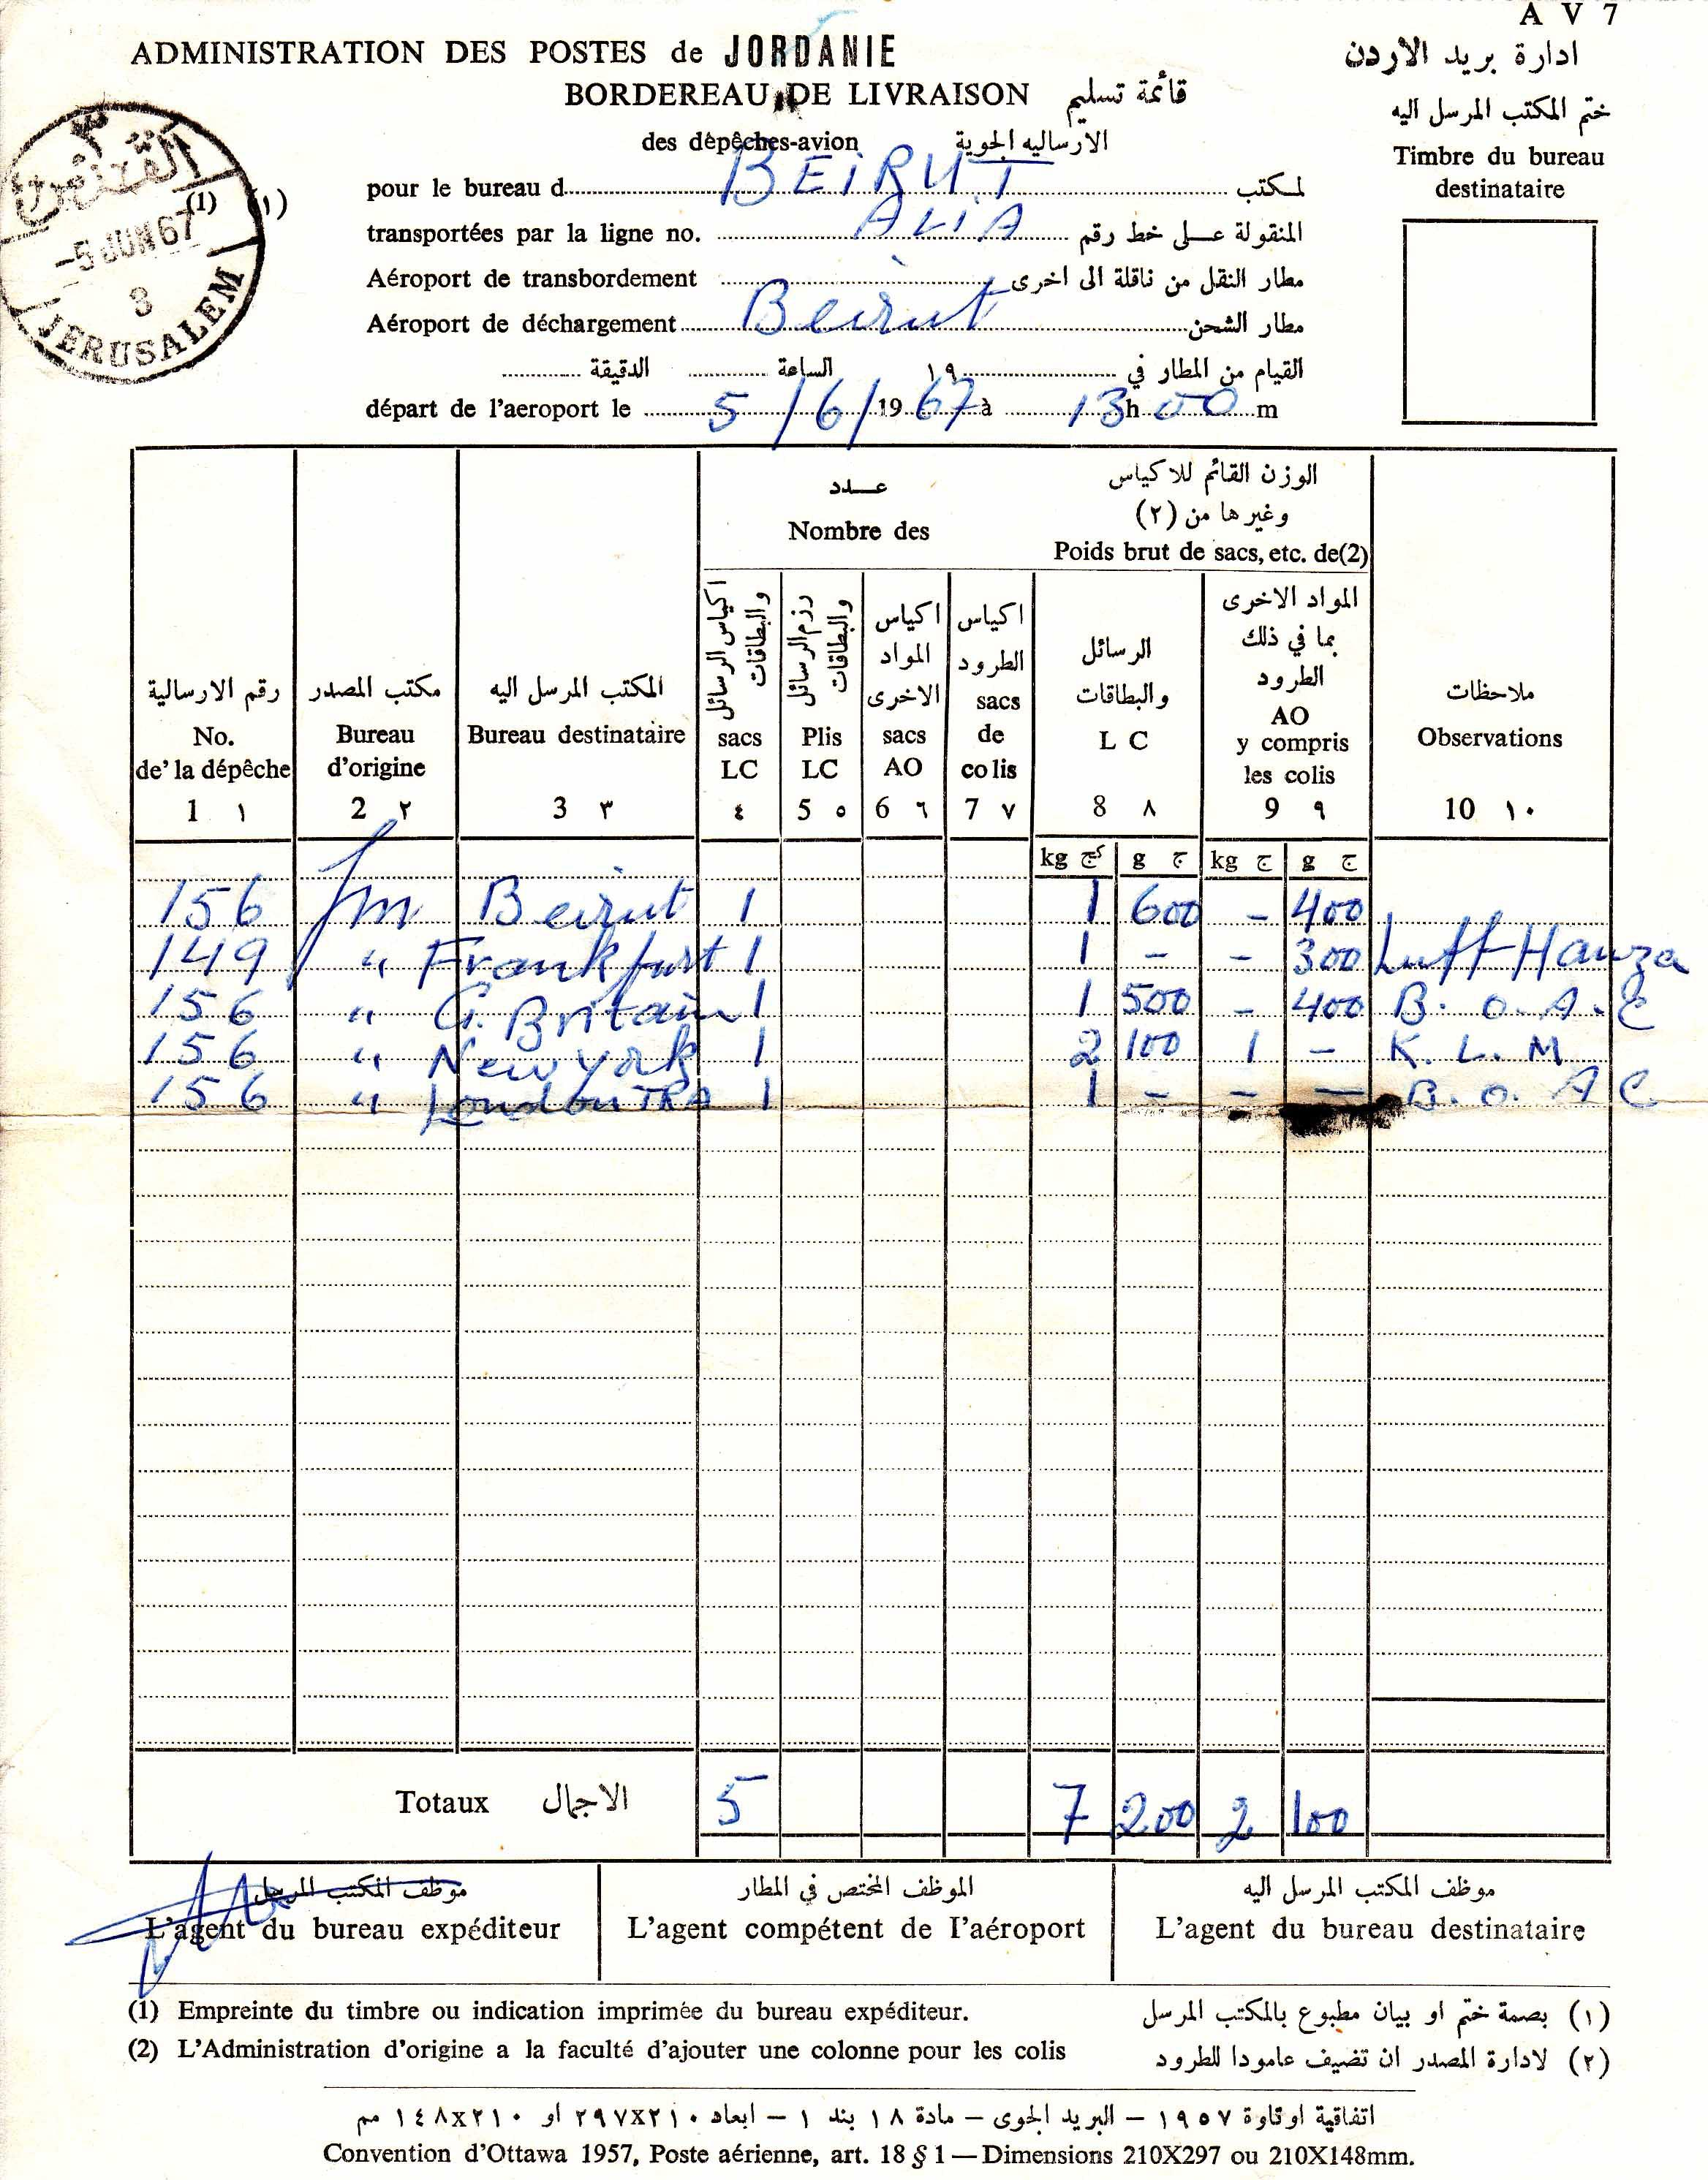 Israeli captured Jordanian mail document for airmail dispatches on day 1967 War began